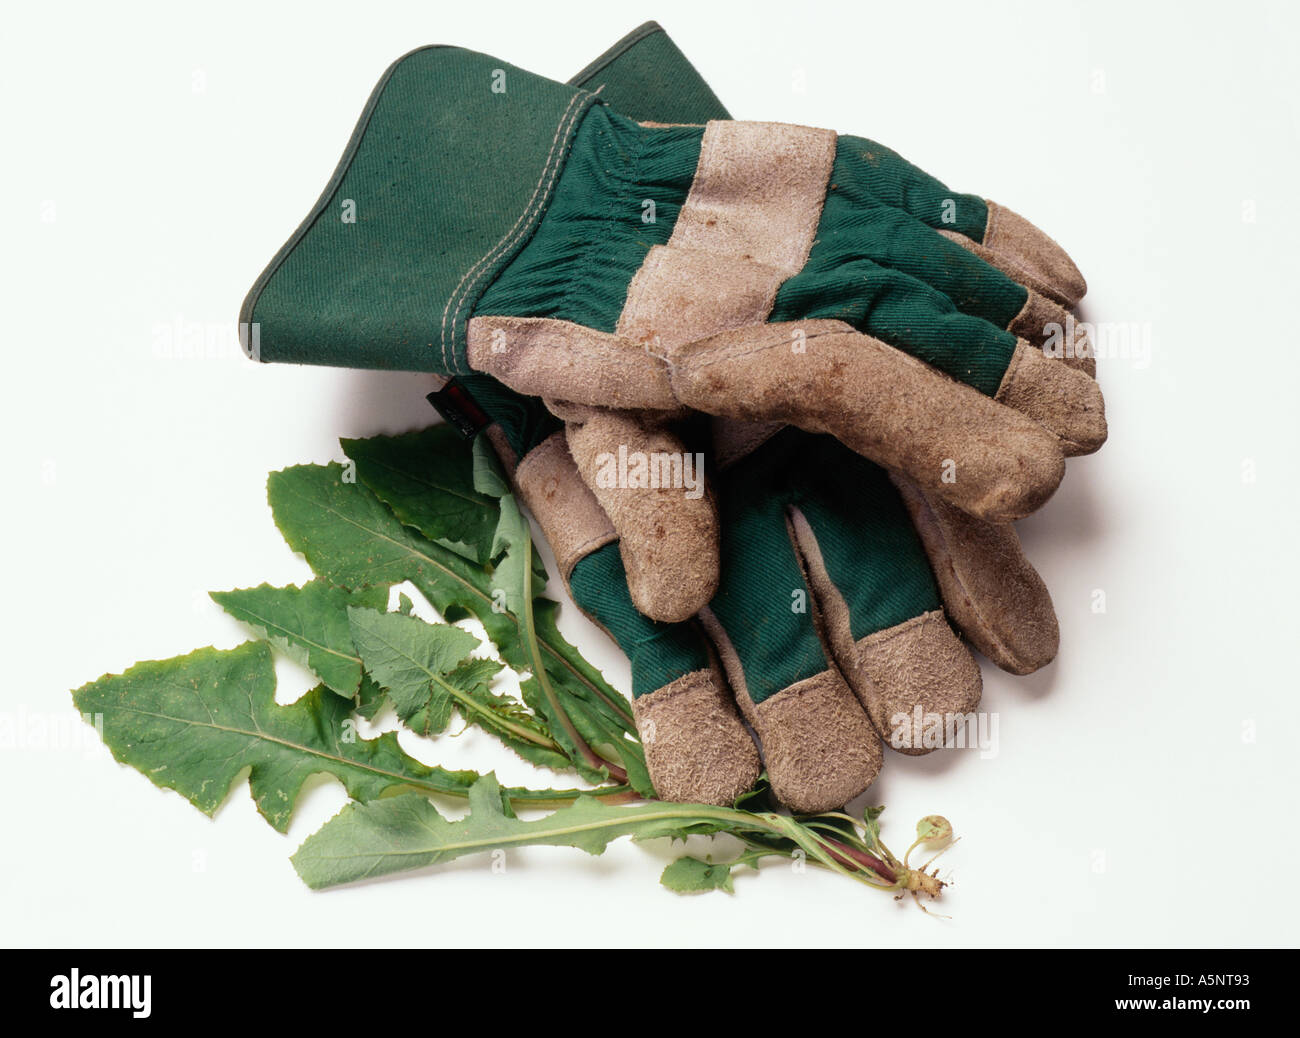 Gardening gloves and weeds - Stock Image